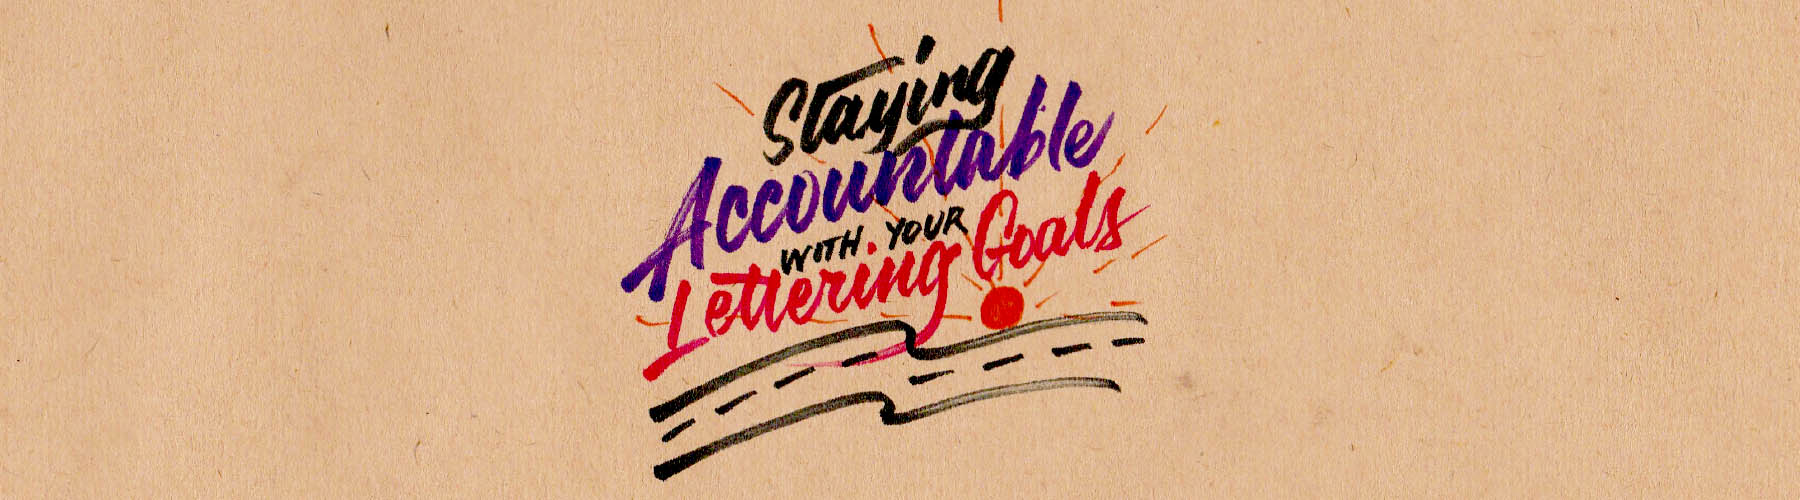 Staying-Accountable-with-your-Lettering-GoalsArtboard-1.jpg